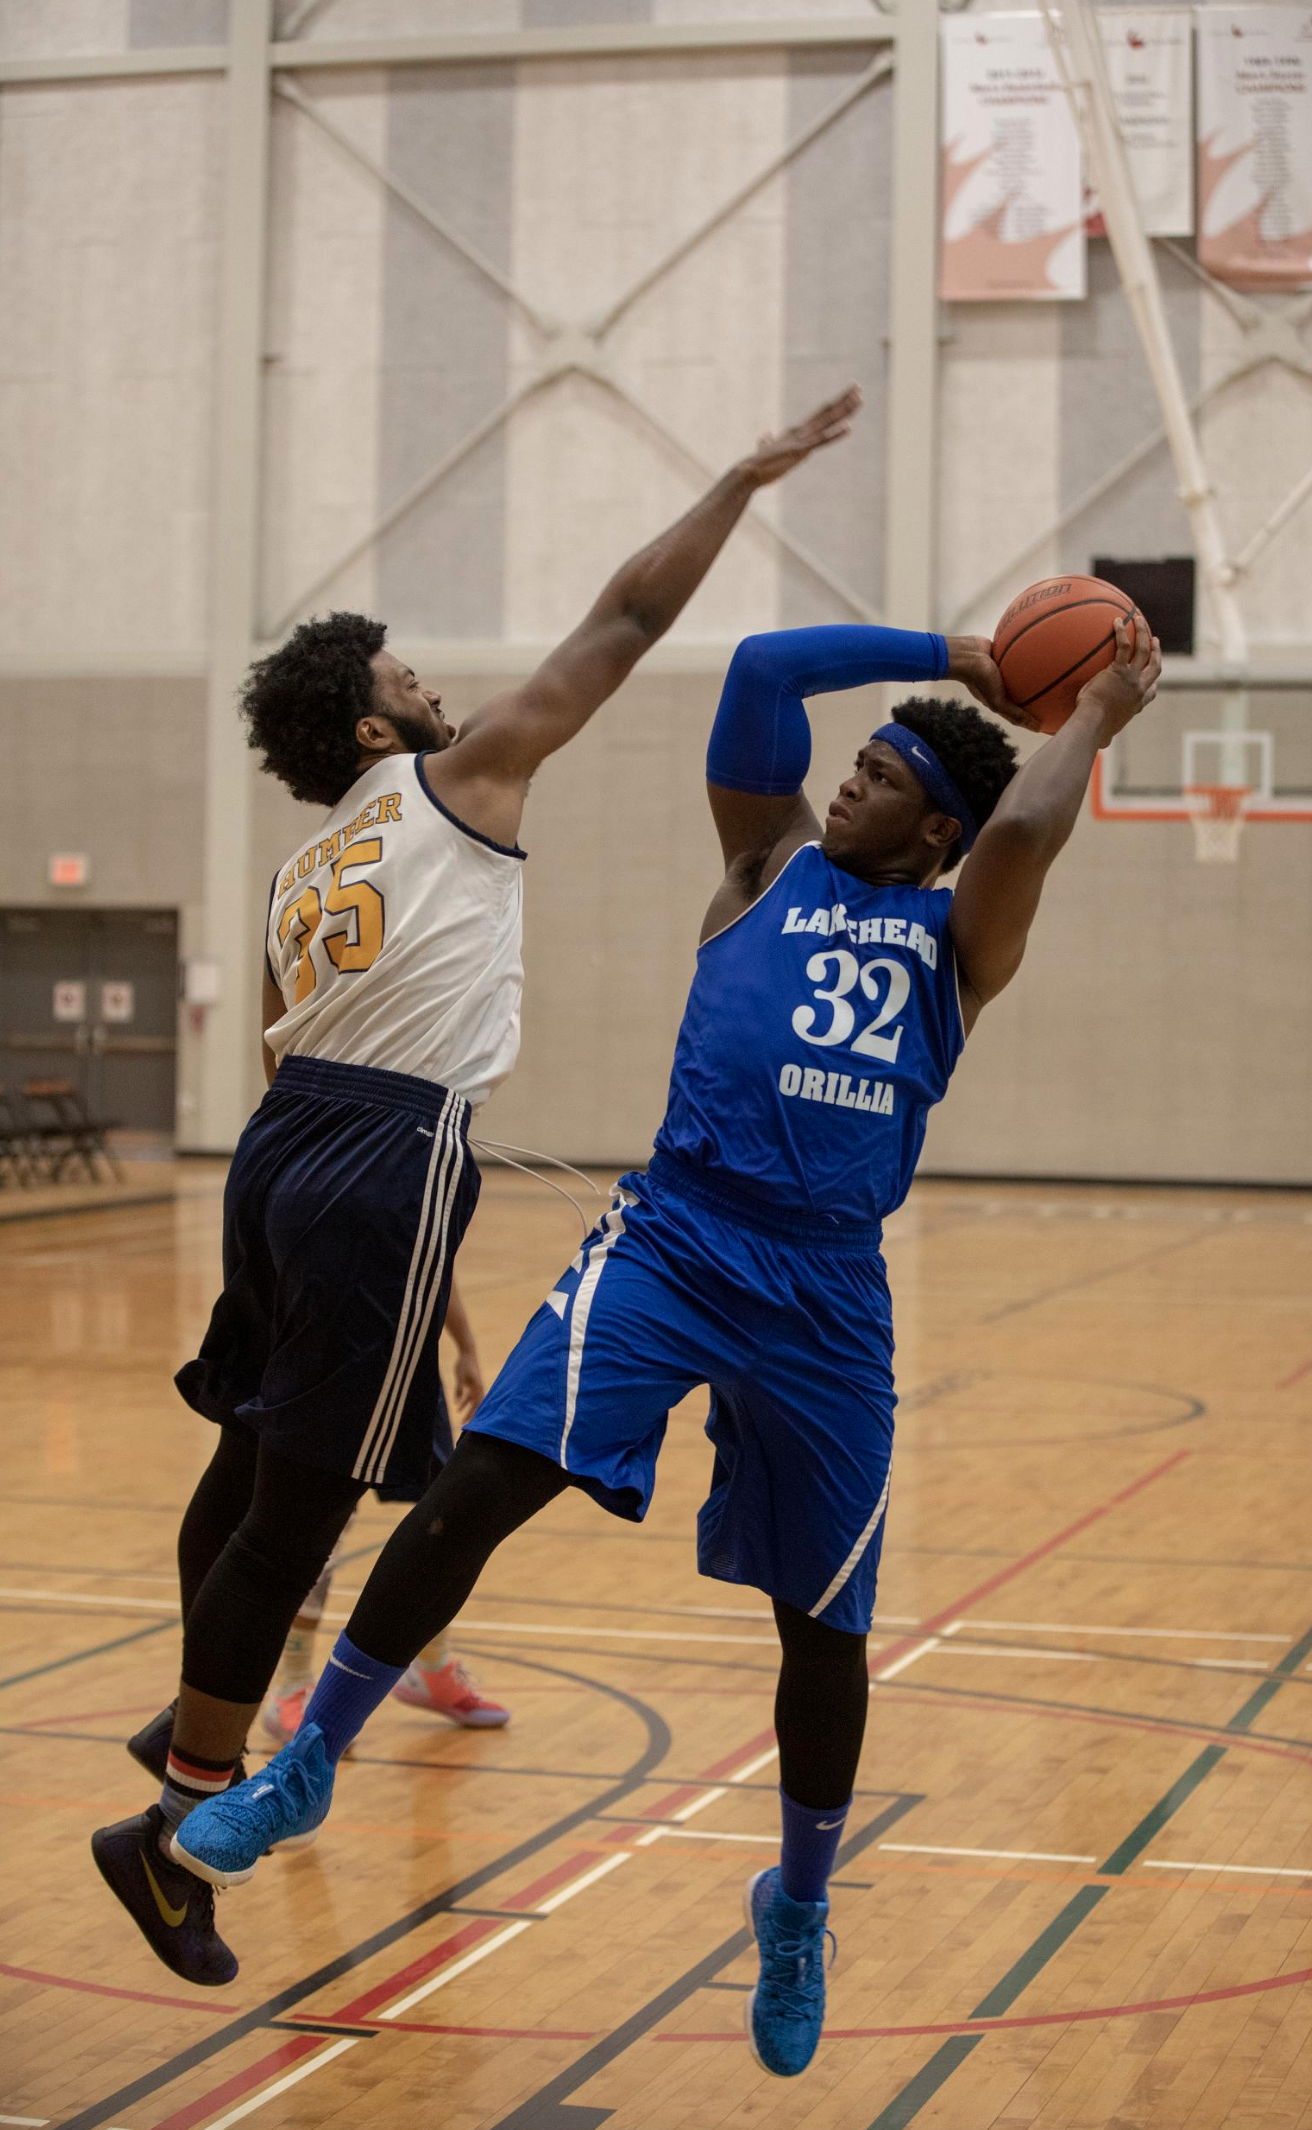 Orillia Thunderwolves Basketball